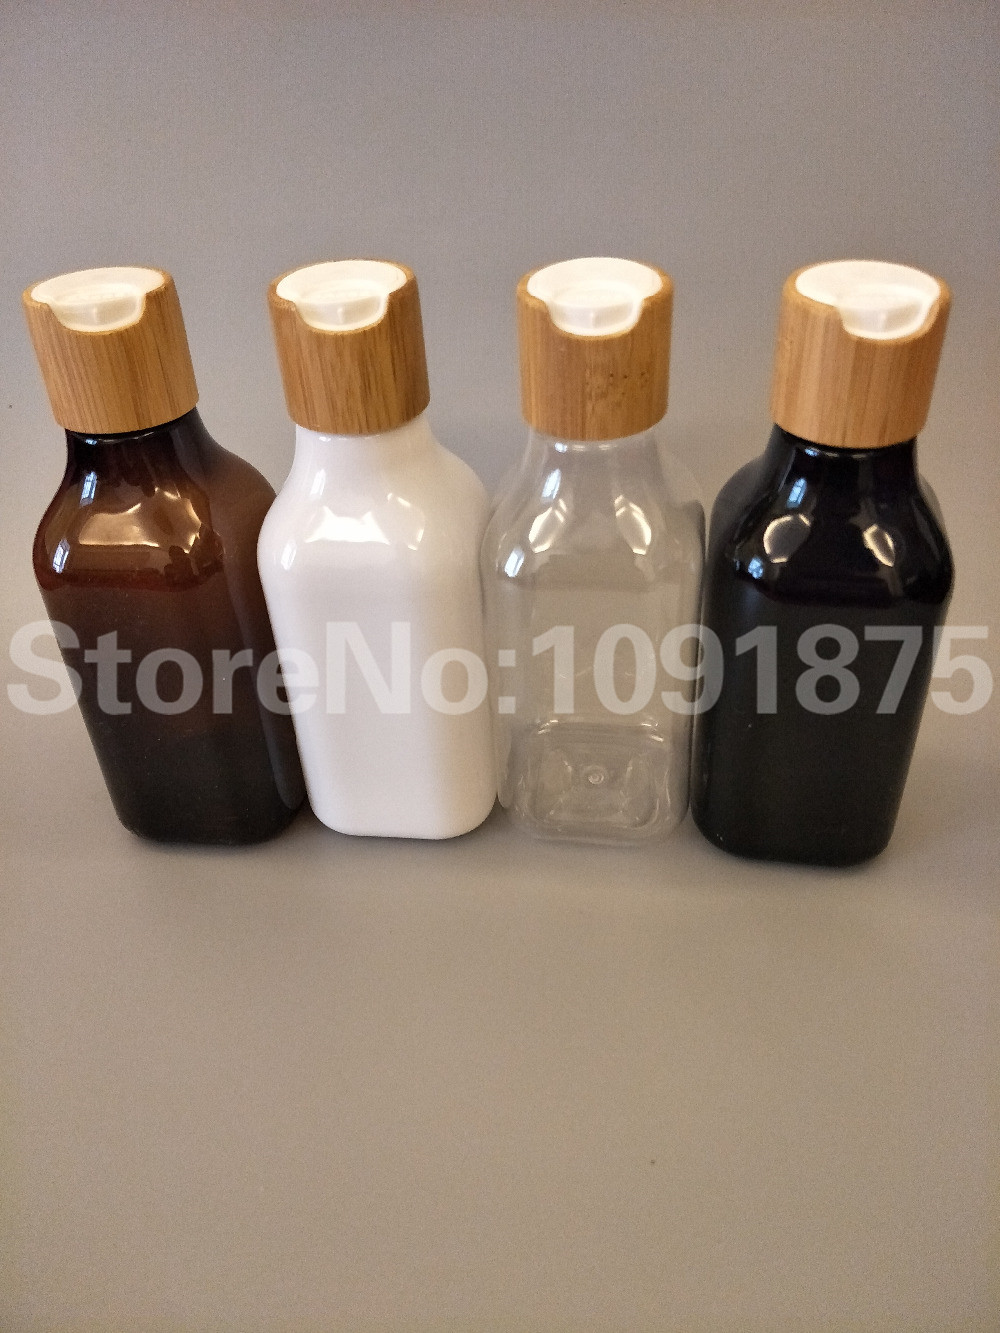 Free Shipping 10pcs/lot 200ml White Black Brown Clear Color PET Bottle With Bamboo Disc Top Cap For Cosmetic Package